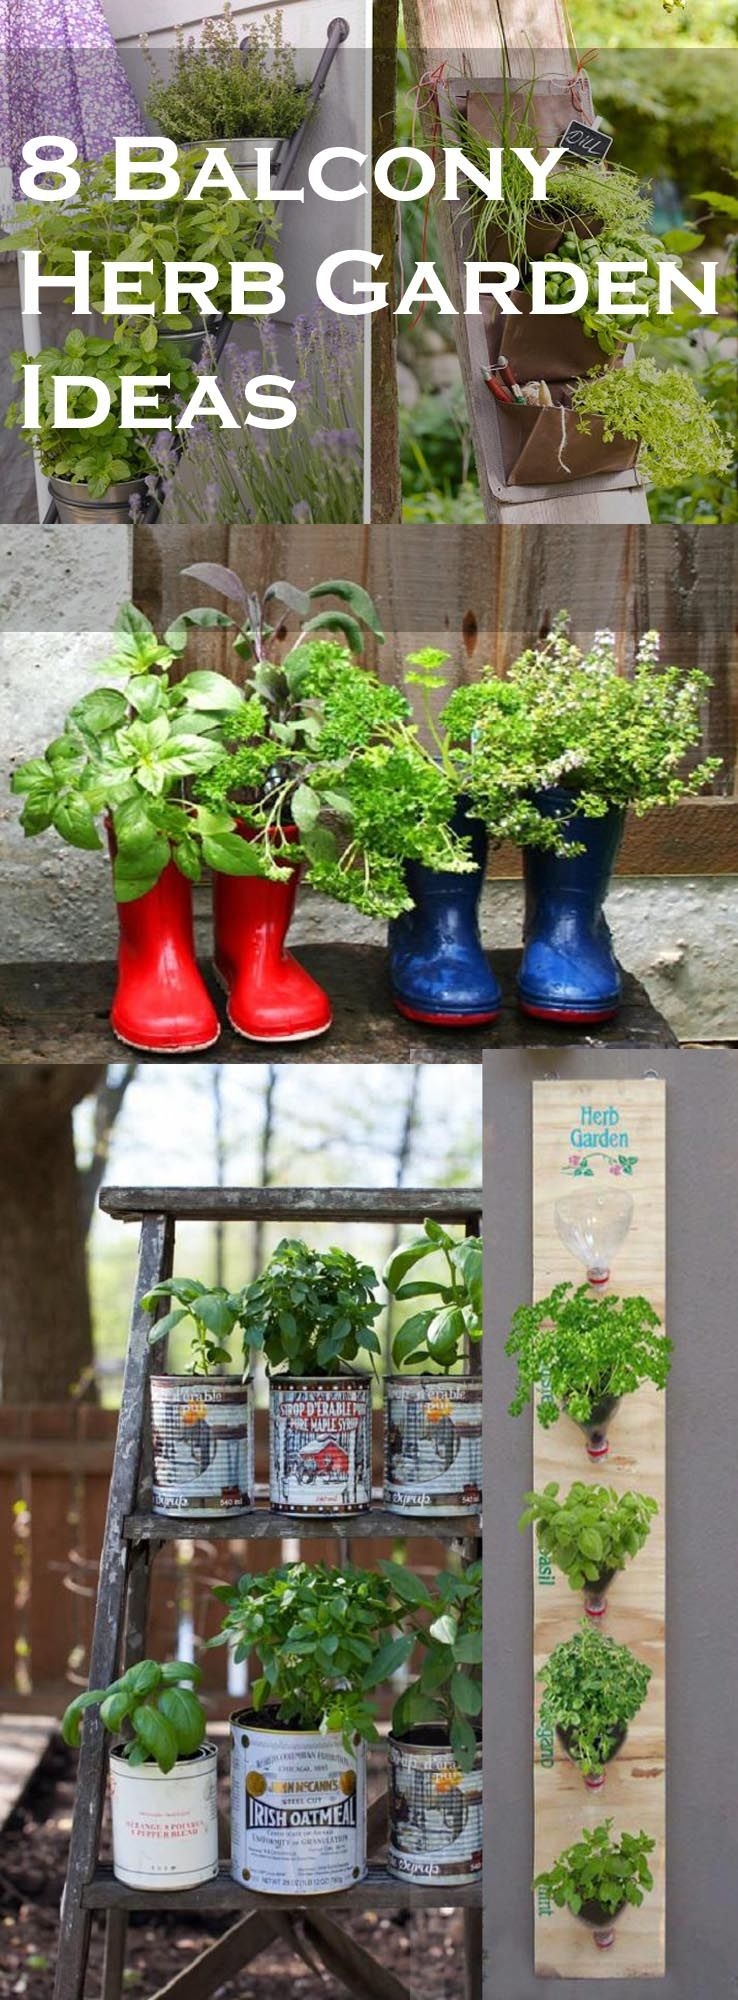 8 Balcony Herb Garden Ideas You Would Like to Try | OGT Blogger ...